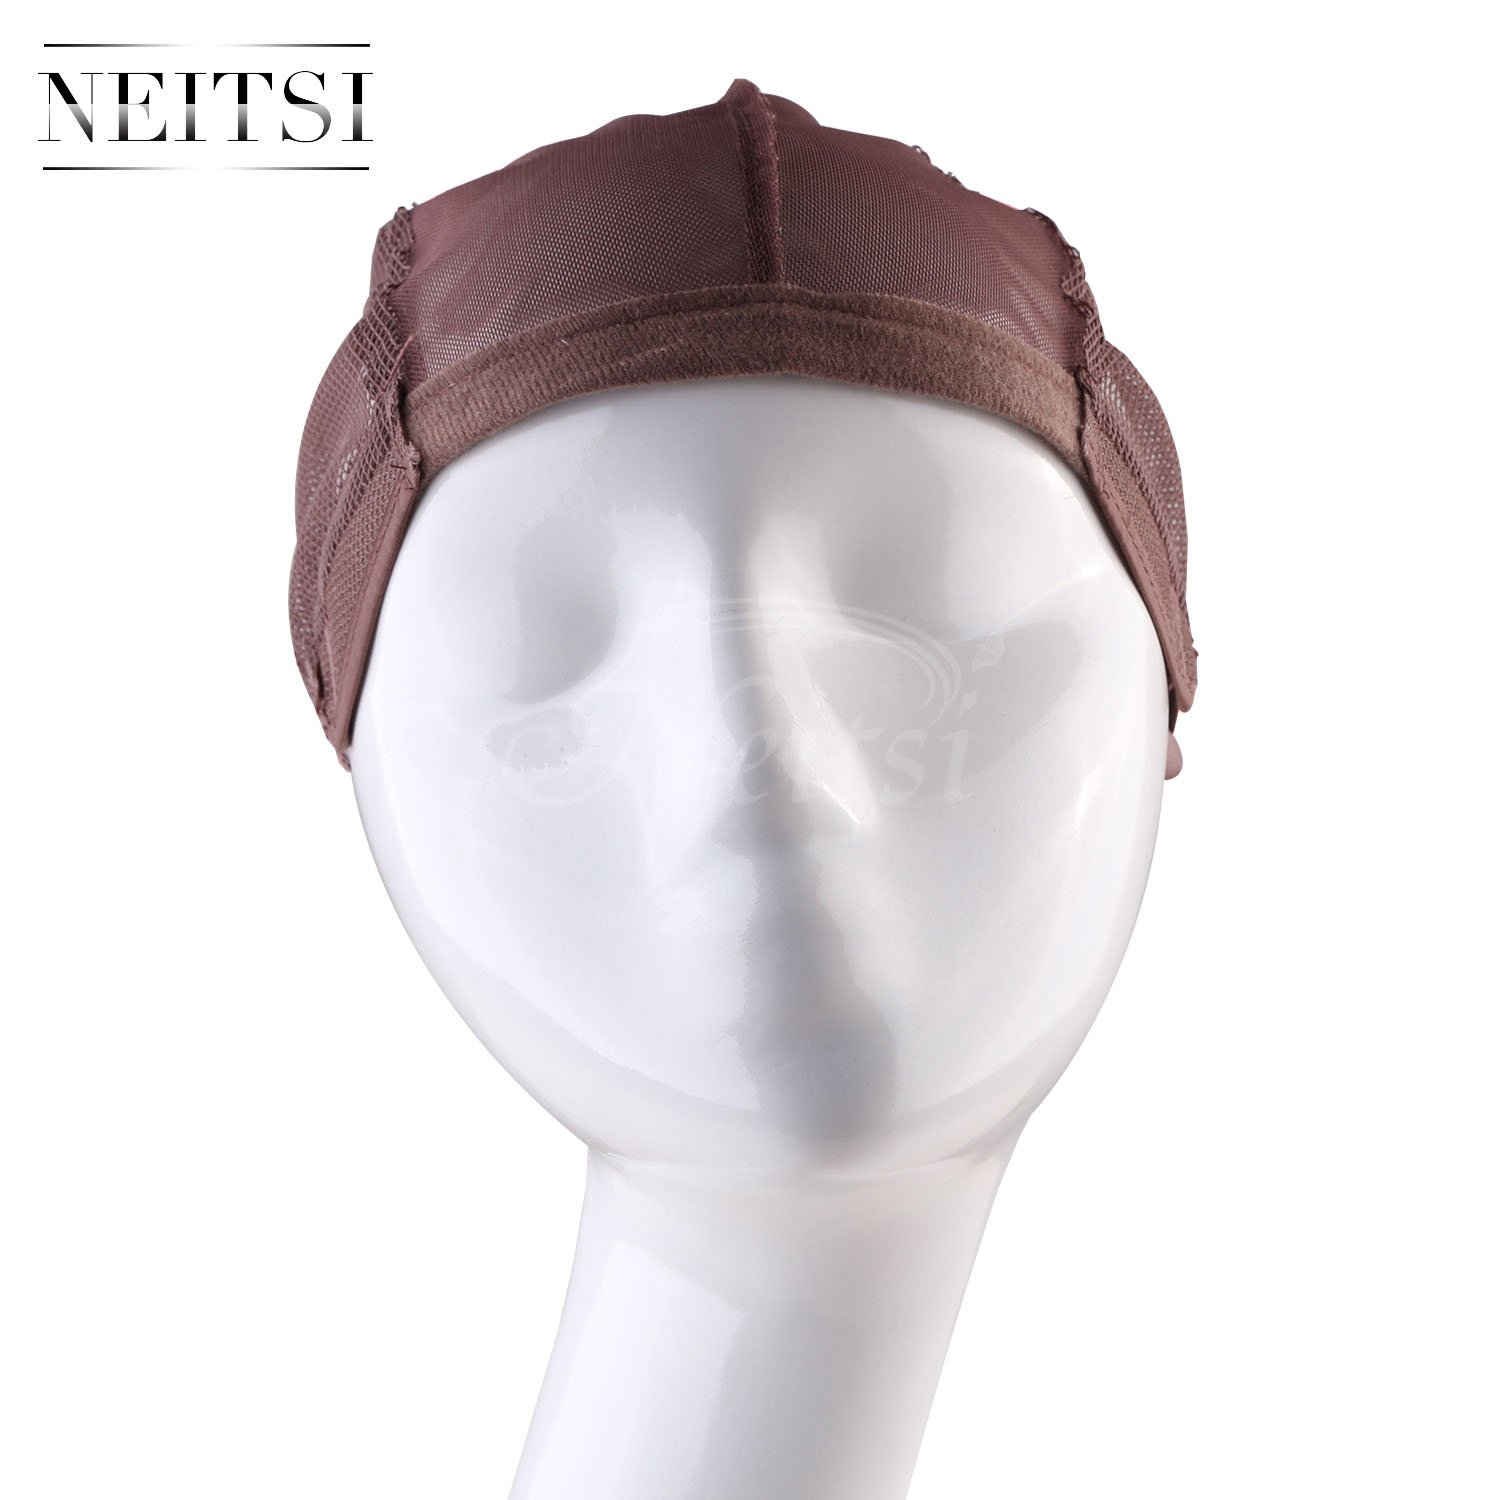 Neitsi Stretch Mesh Liner Breathable Hair Wig Weaving Wig Cap (Brown#) LTD